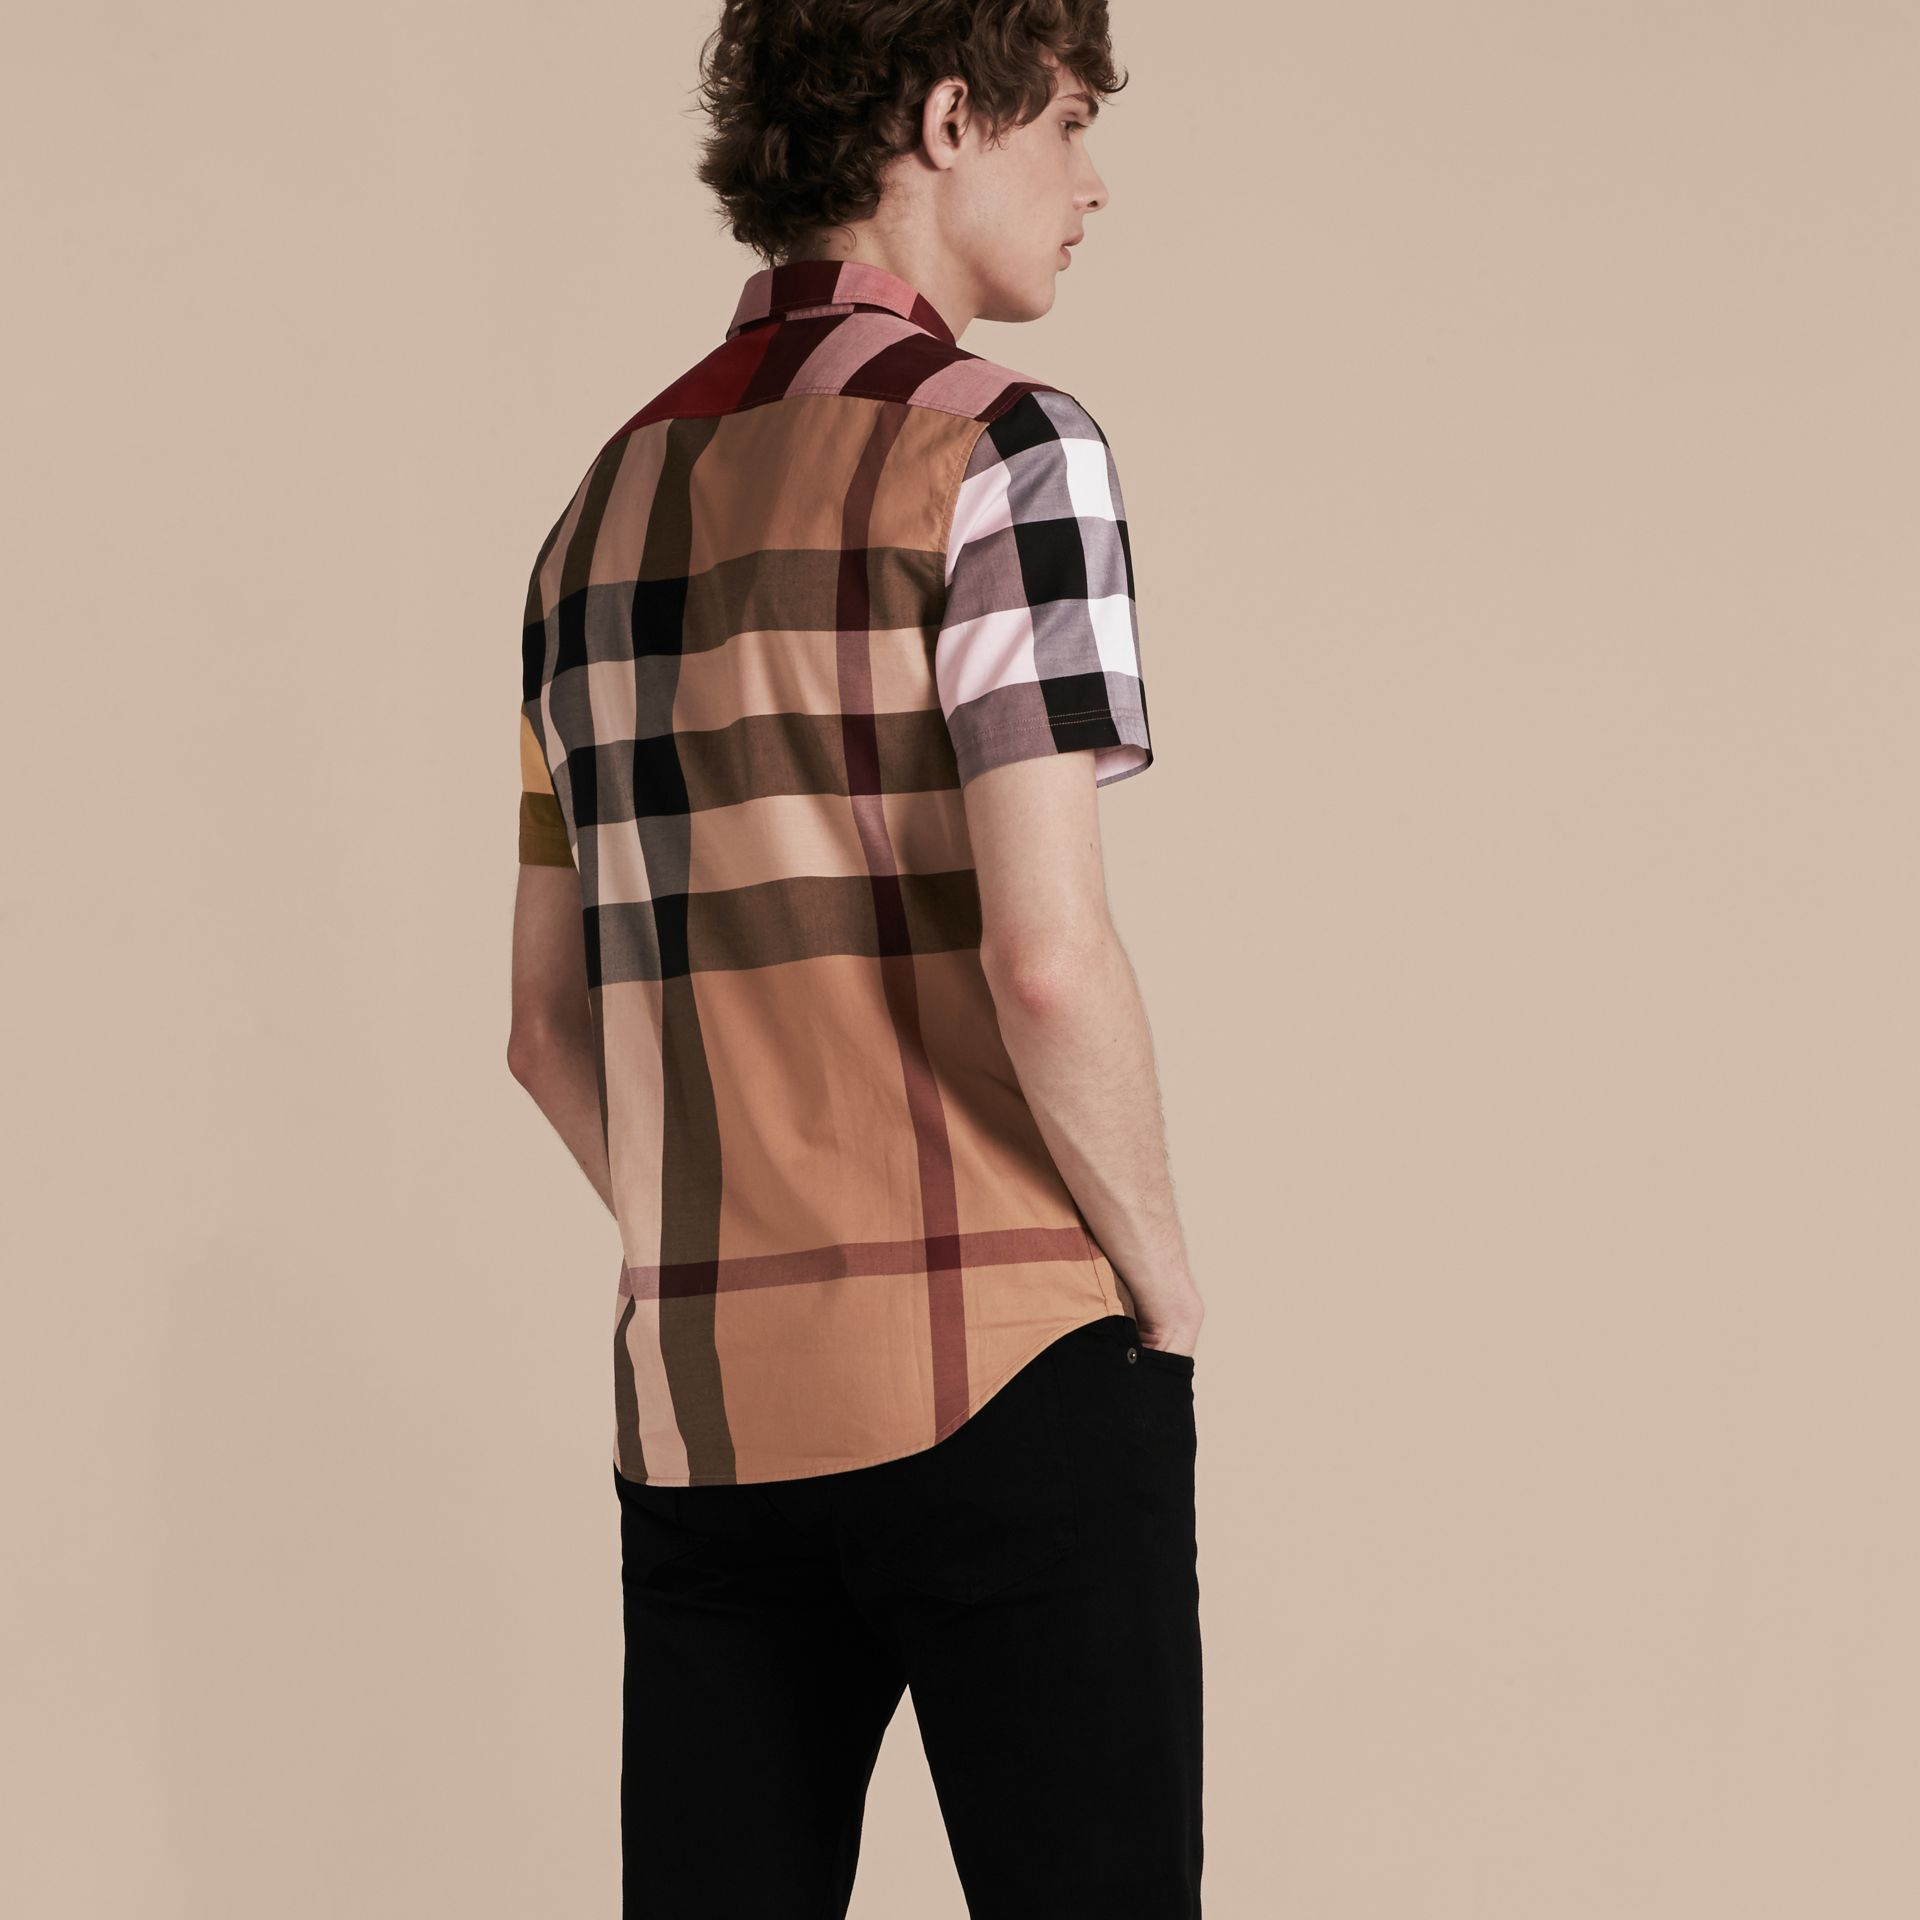 Camel Short-sleeved Colour Block Check Cotton Shirt Camel - gallery image 3